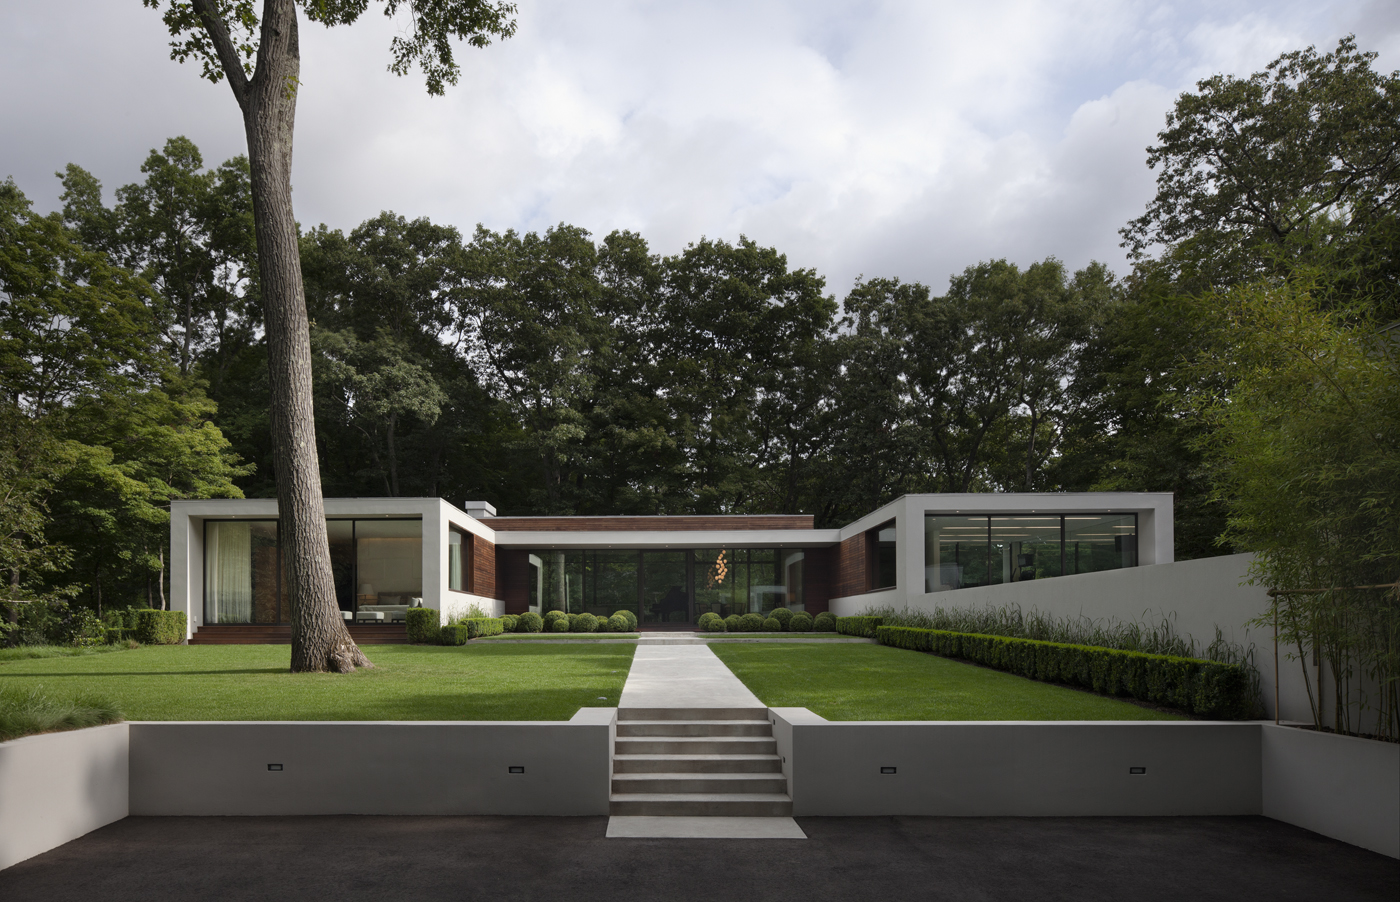 2013 AIA Austin Honor Award2013 Moffly A-List Award, Best Modern Architecture2013 Moffly Media A-List Award, Best Pool House - Project: New Canaan ResidenceArchitect: Specht Architects